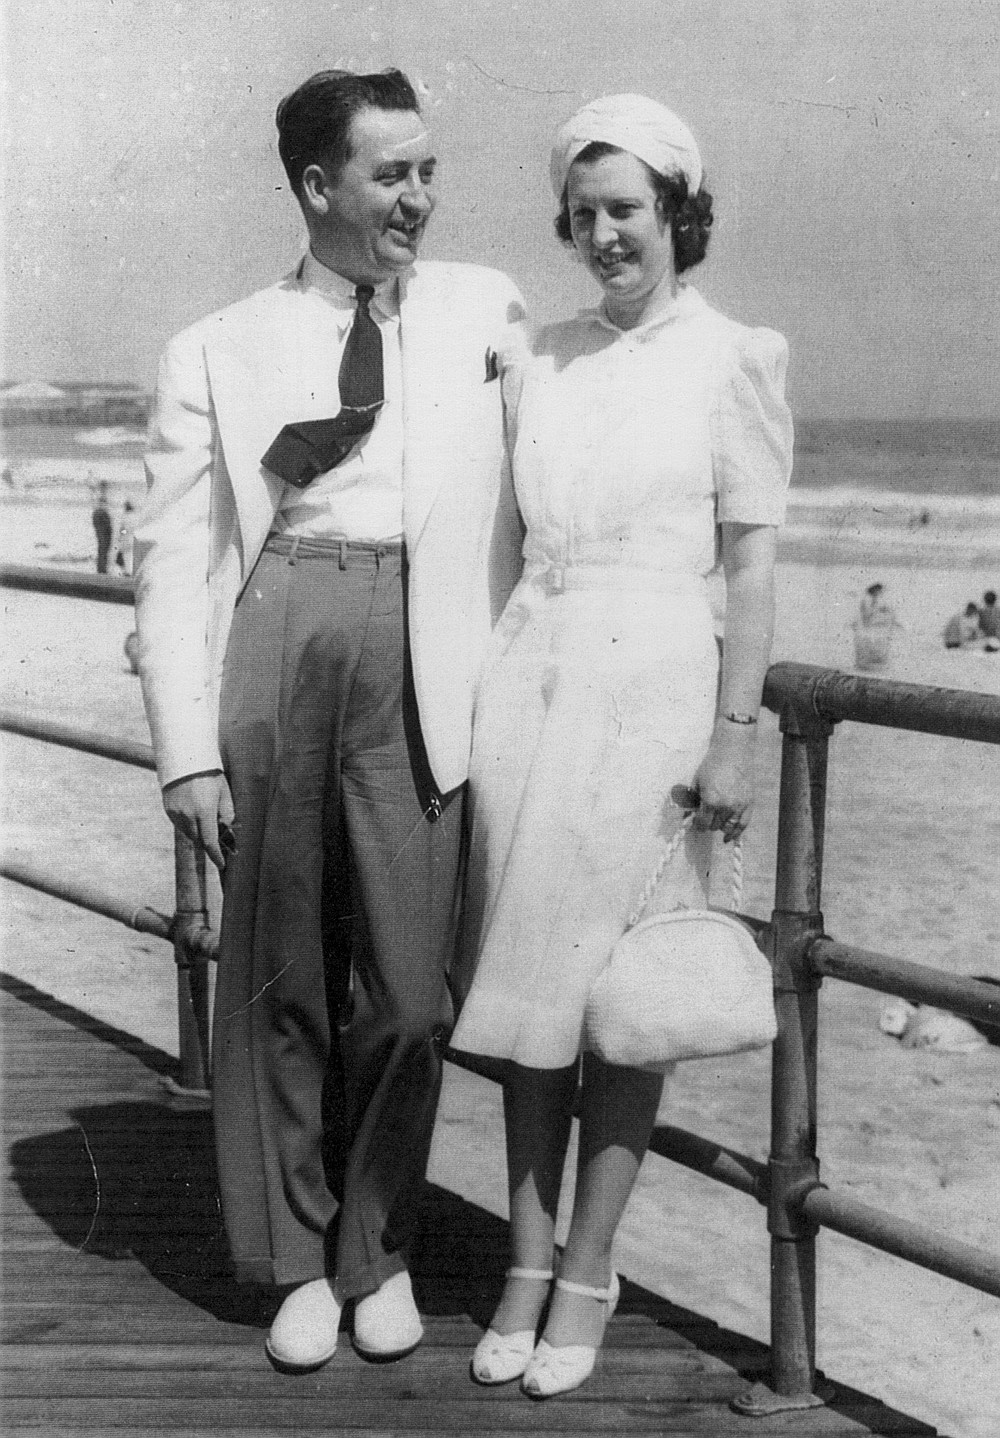 Pappy and Sweetheart on their honeymoon, 1940. When Sweetheart died in '89, he immediately moved into our home.